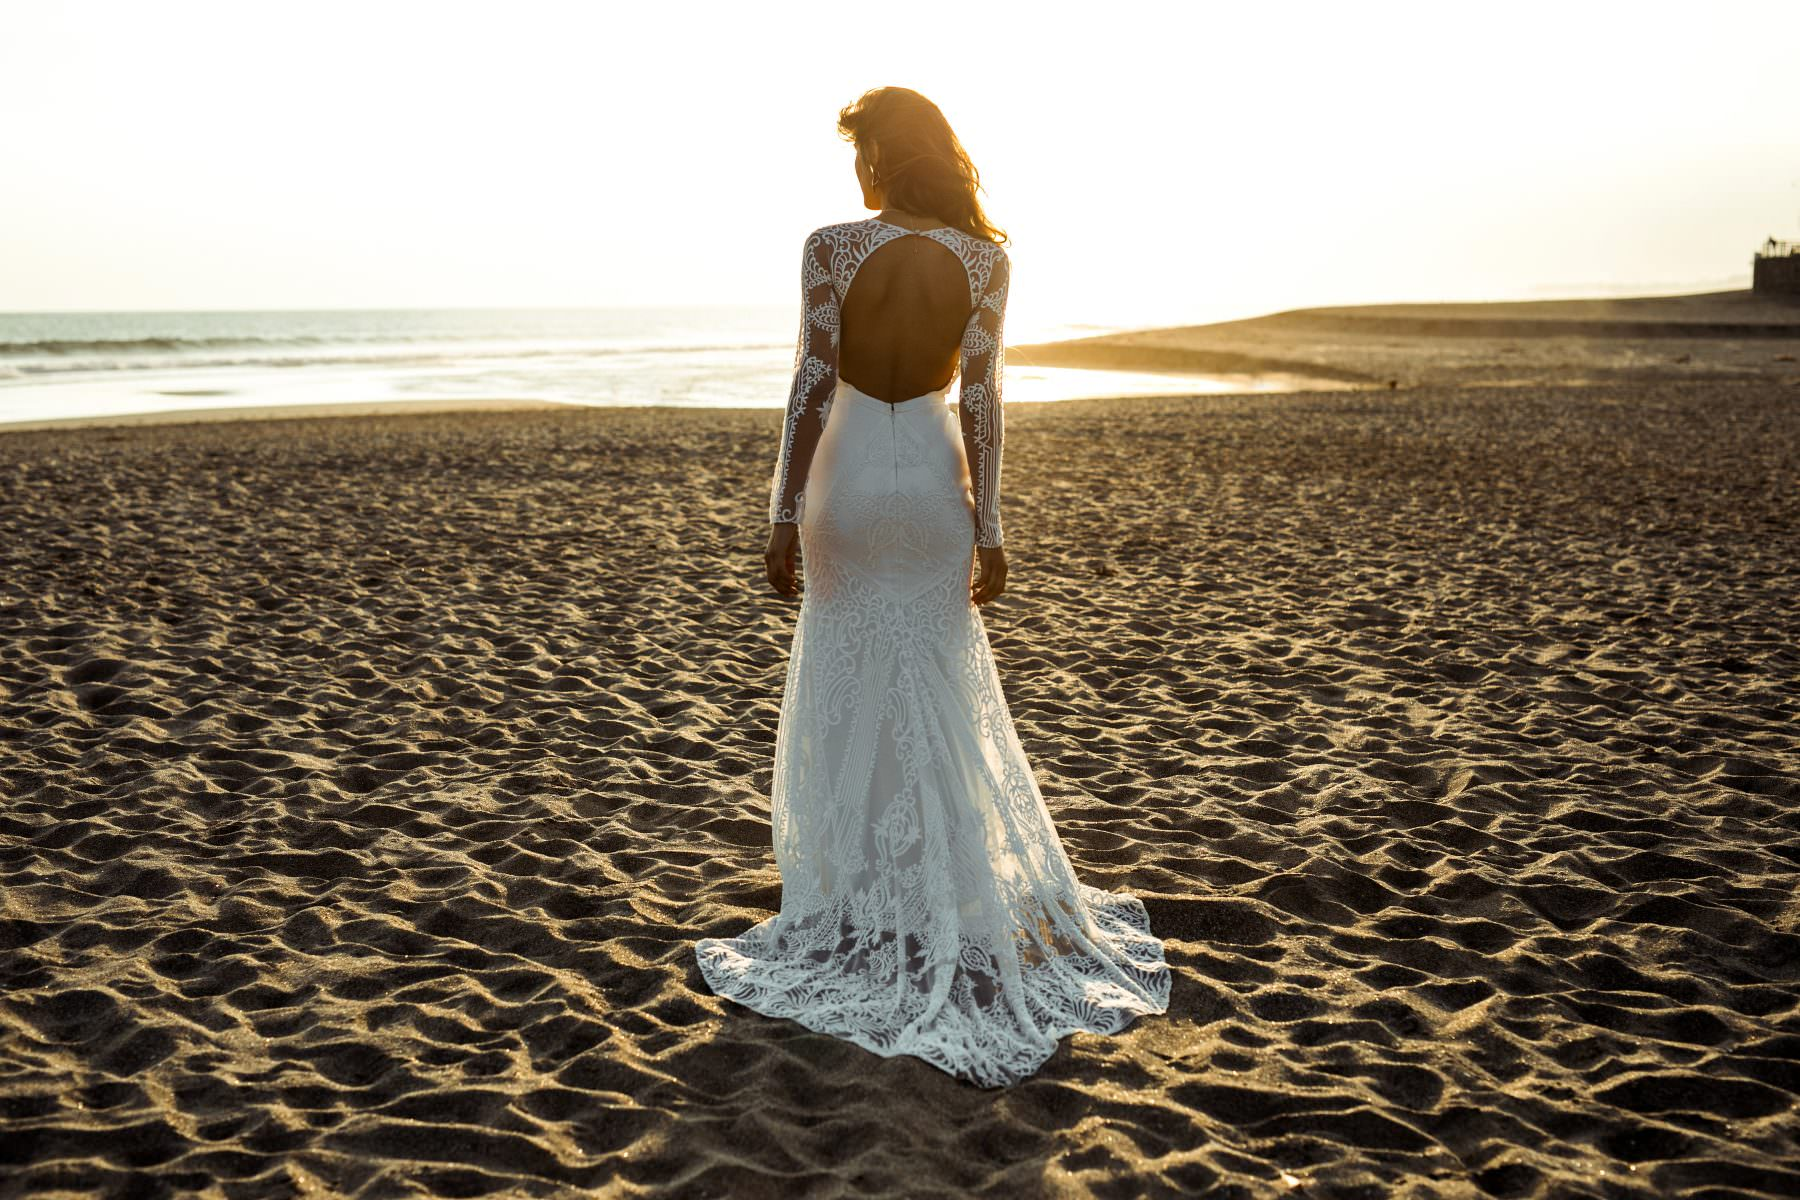 Tate lovers society wedding dresses Wedding Dress wedding dresses bridal shop store gowns christchurch wellington